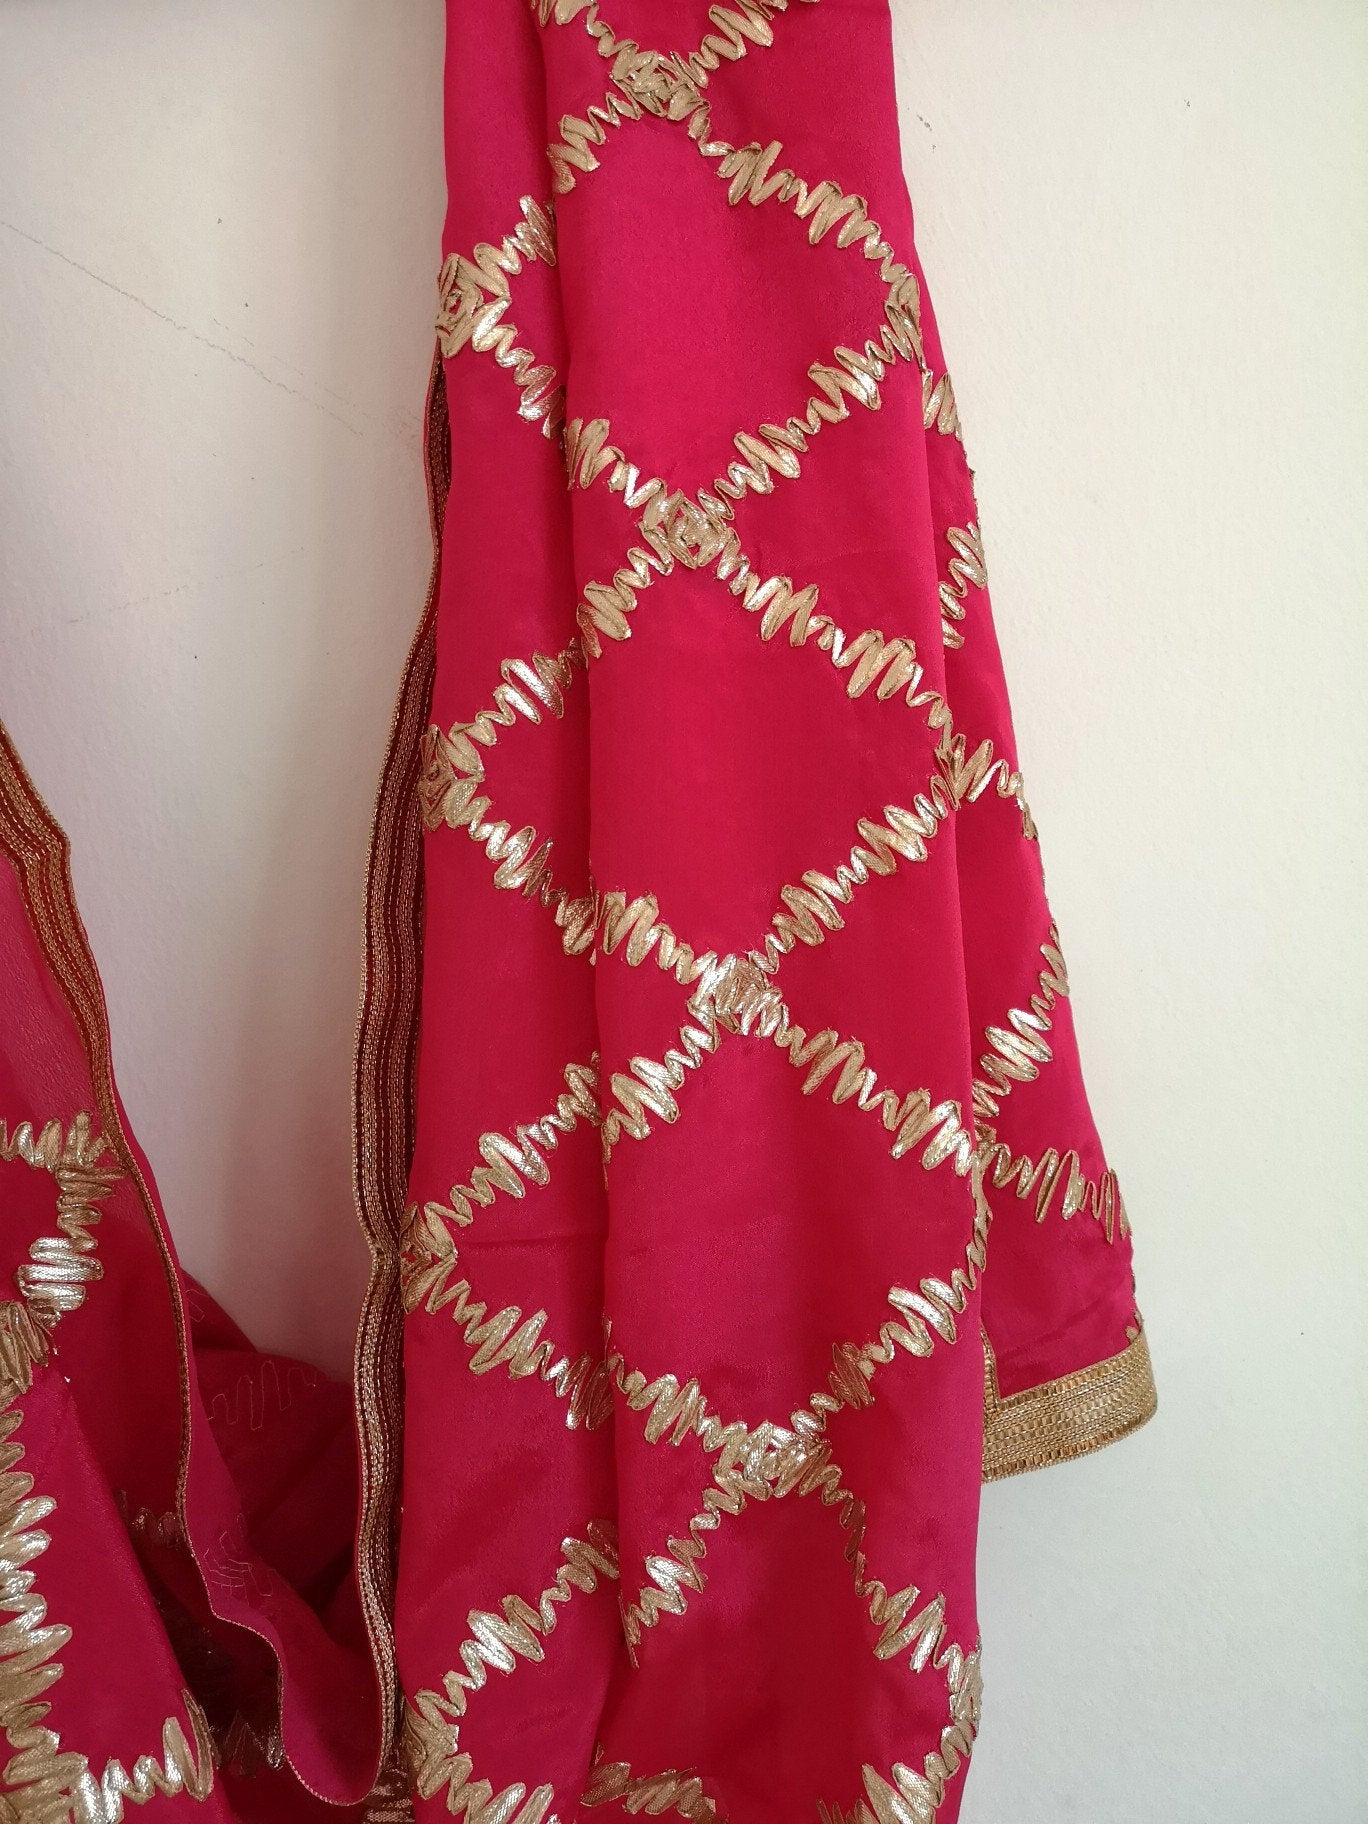 Red gota patti chinnon / chinon dupatta (scarf), bridal wear, party wear, suit, lehenga, anarkali, bride, bridesmaids - Pink Chunari